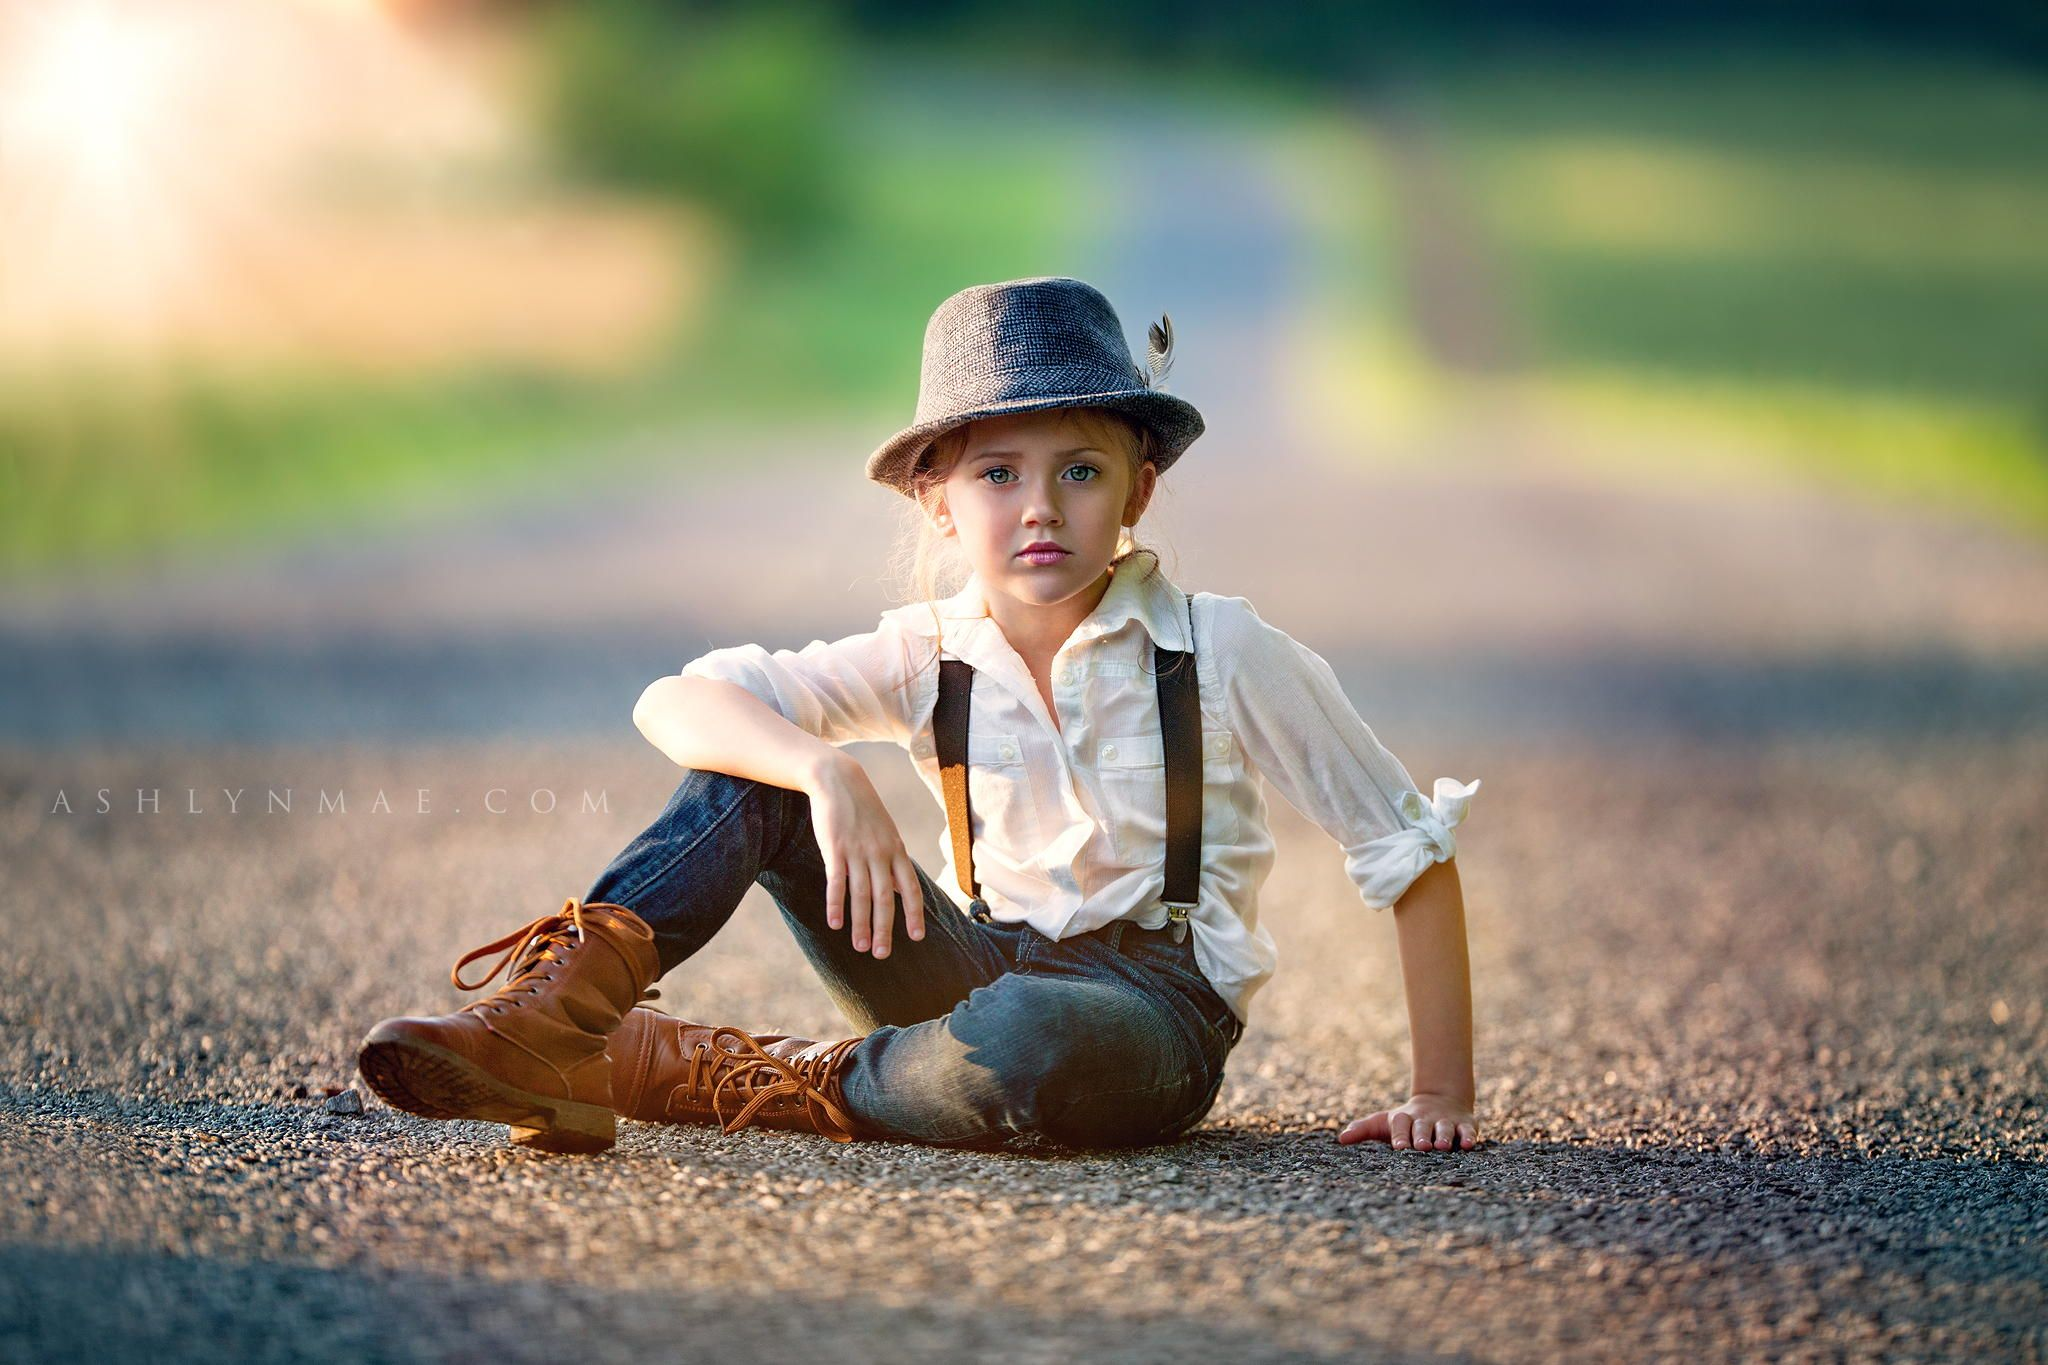 Pin By Mona Mae On Backgrounds: Tomboy By Ashlyn Mae Photography On 500px